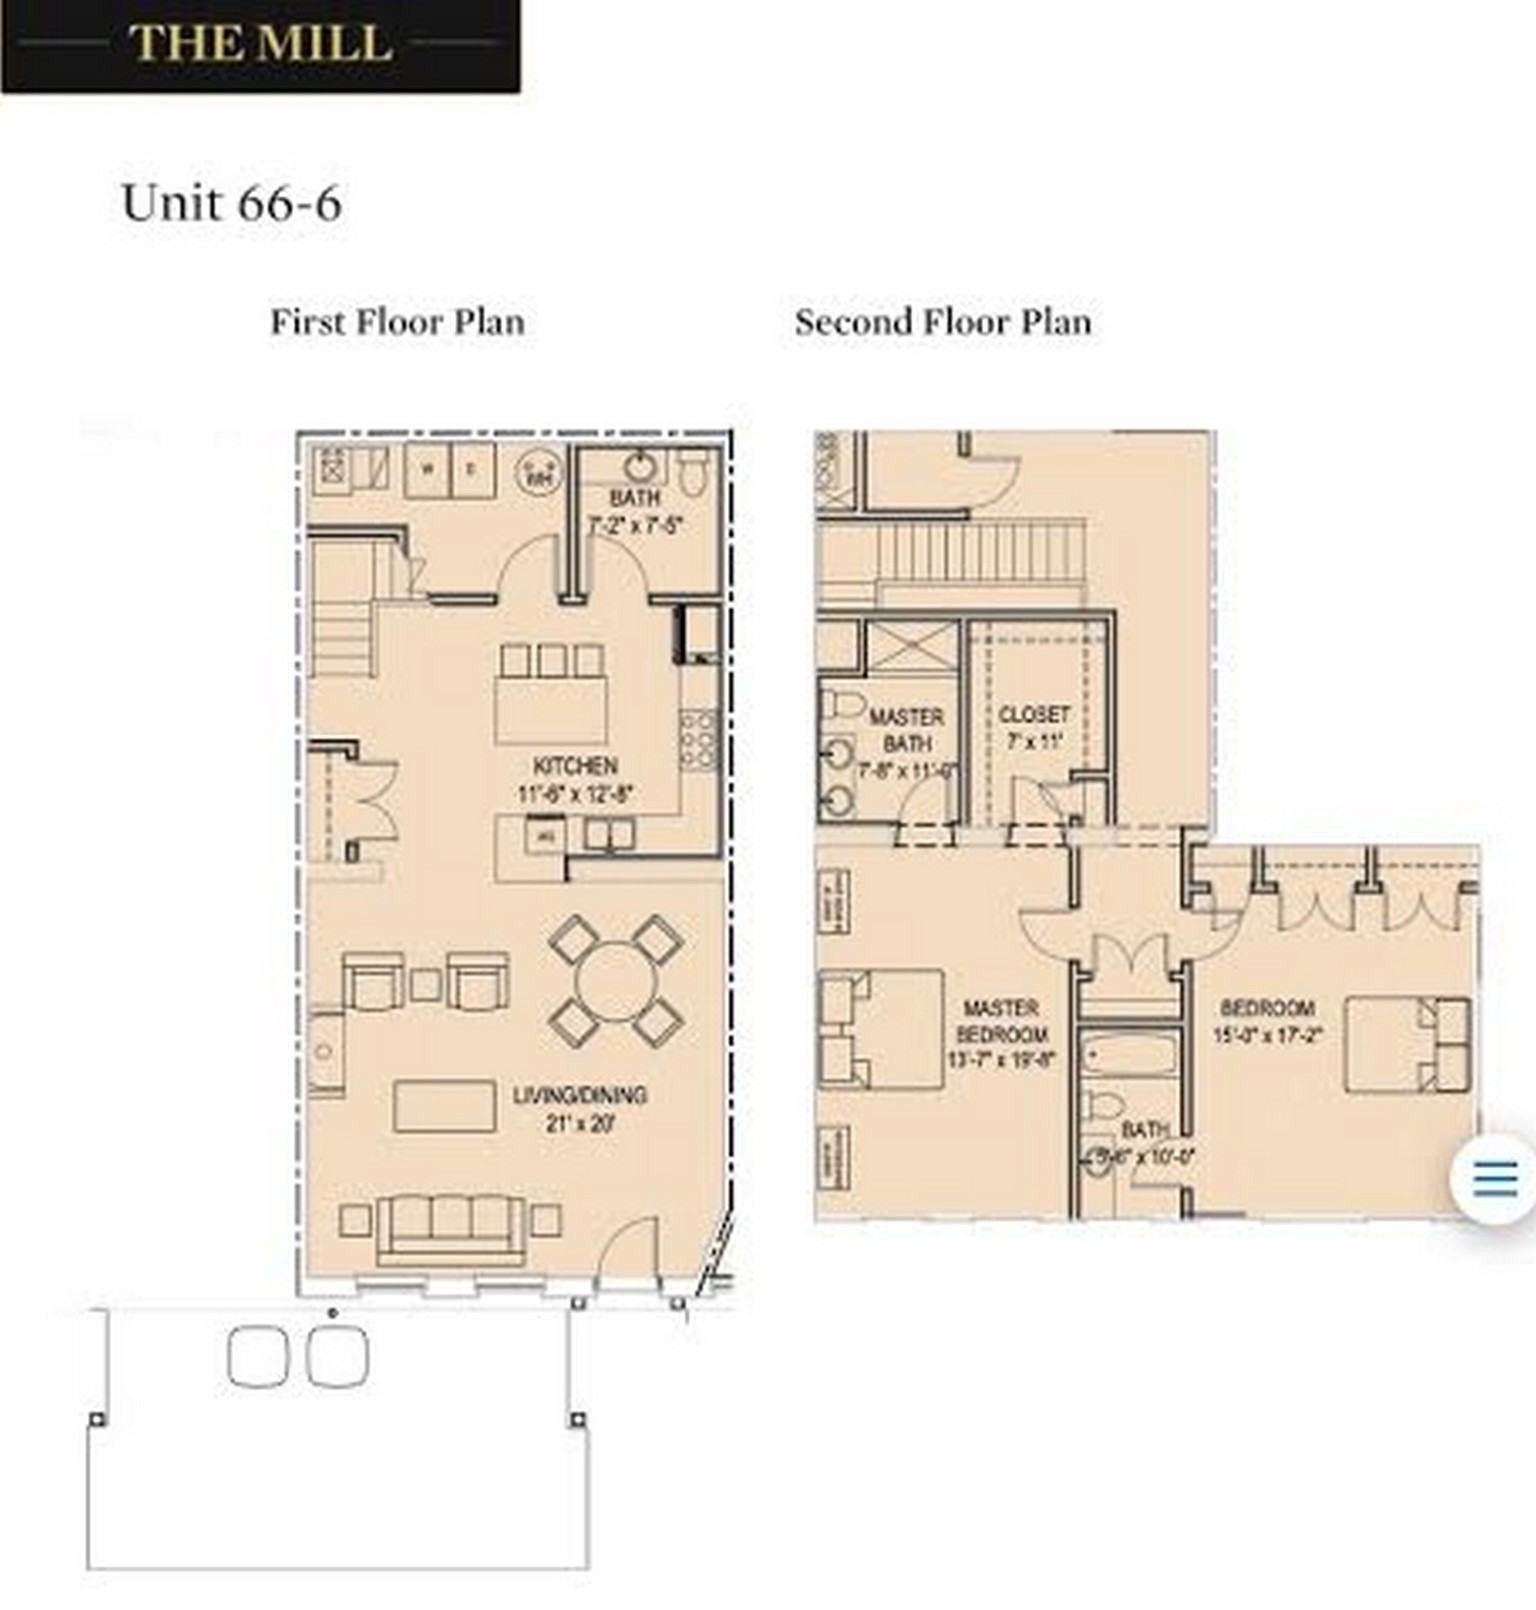 Condominium for Sale at 66-6 High St 66-6 High St Mill Building, Unit H Guilford, Connecticut, 06437 United States